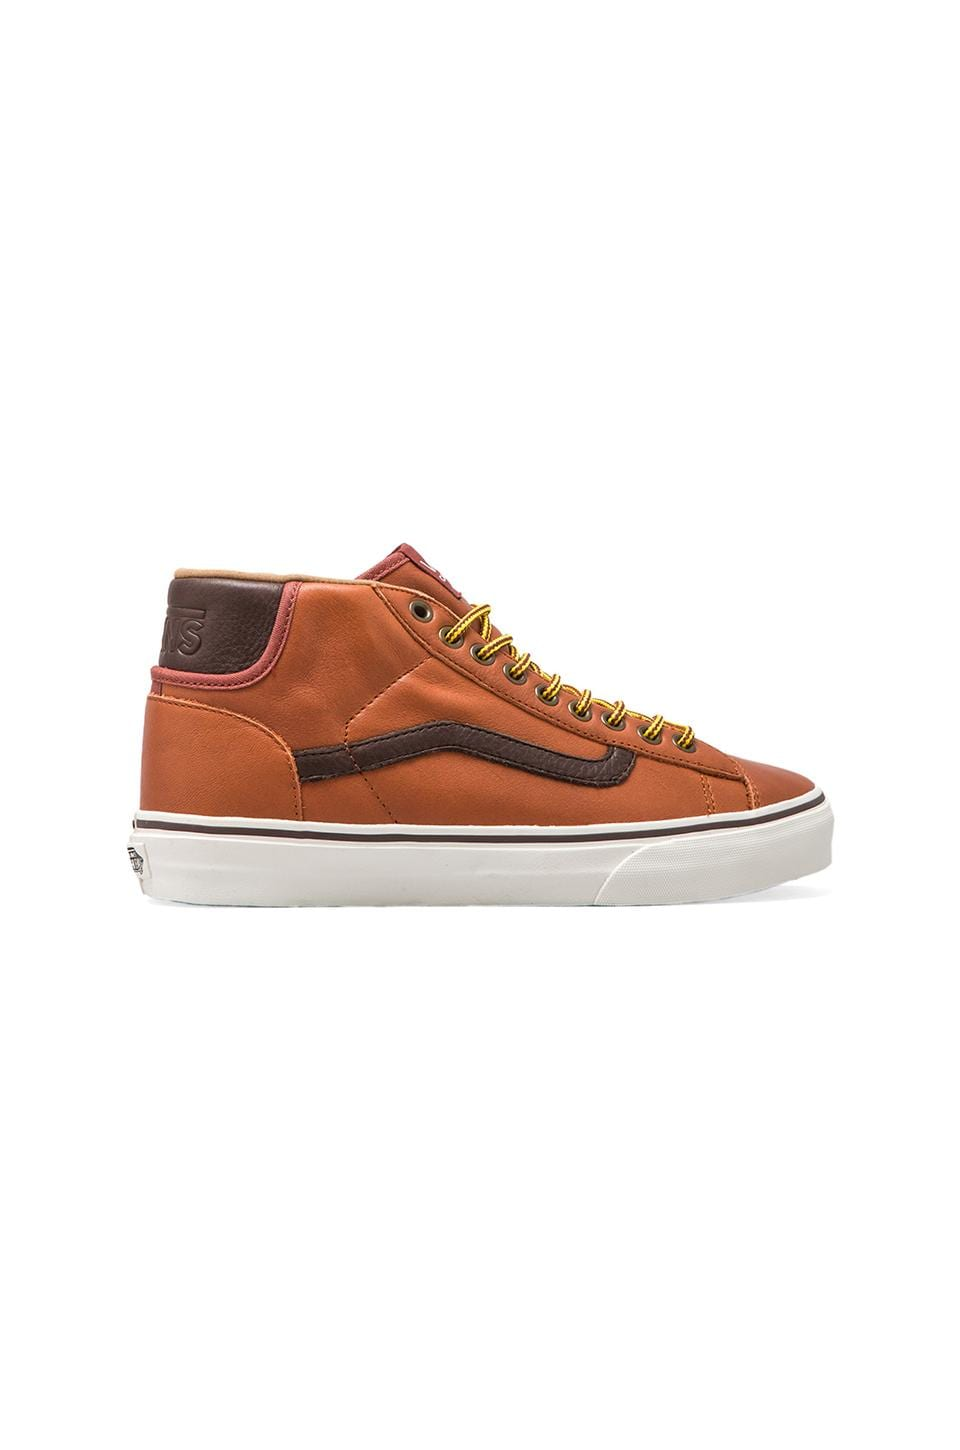 Vans California Mid Skool '77 in Henna